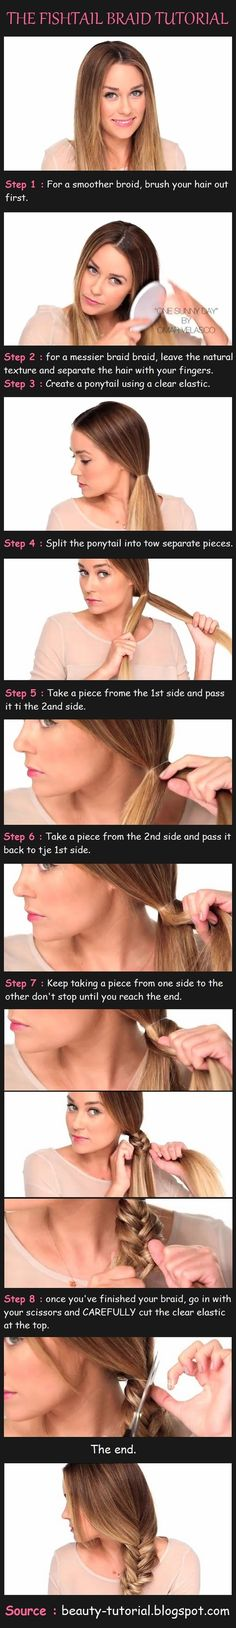 The Fishtail Braid Tutorial ! This is the first fish tail braid tutorial I actually understand ! Pretty Hairstyles, Easy Hairstyles, Latest Hairstyles, Wedding Hairstyles, Beauty Tutorials, Braid Tutorials, Great Hair, Gorgeous Hair, Amazing Hair